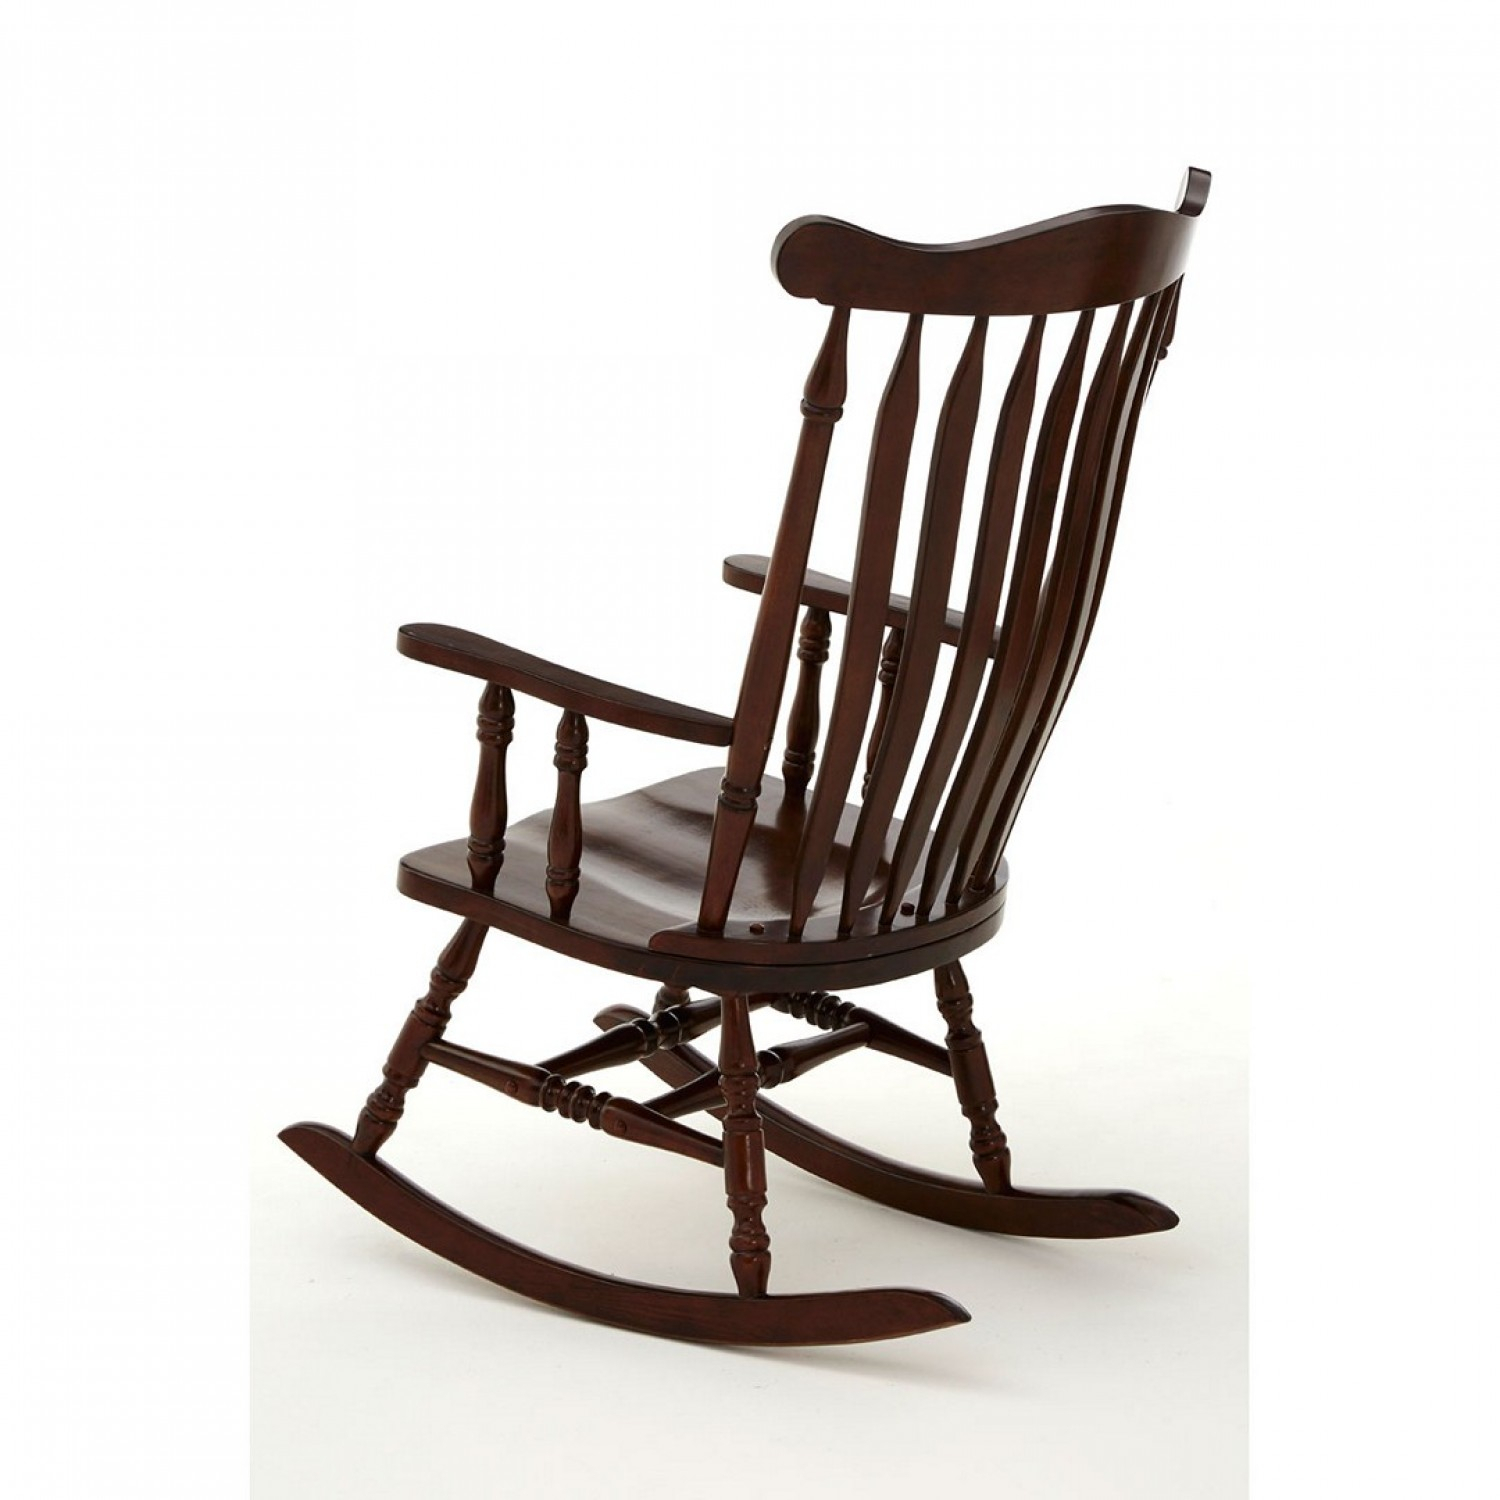 Own This Traditional Rocking Chair, Espresso Colour, Plywood Regarding Espresso Brown Rocking Chairs (#15 of 20)